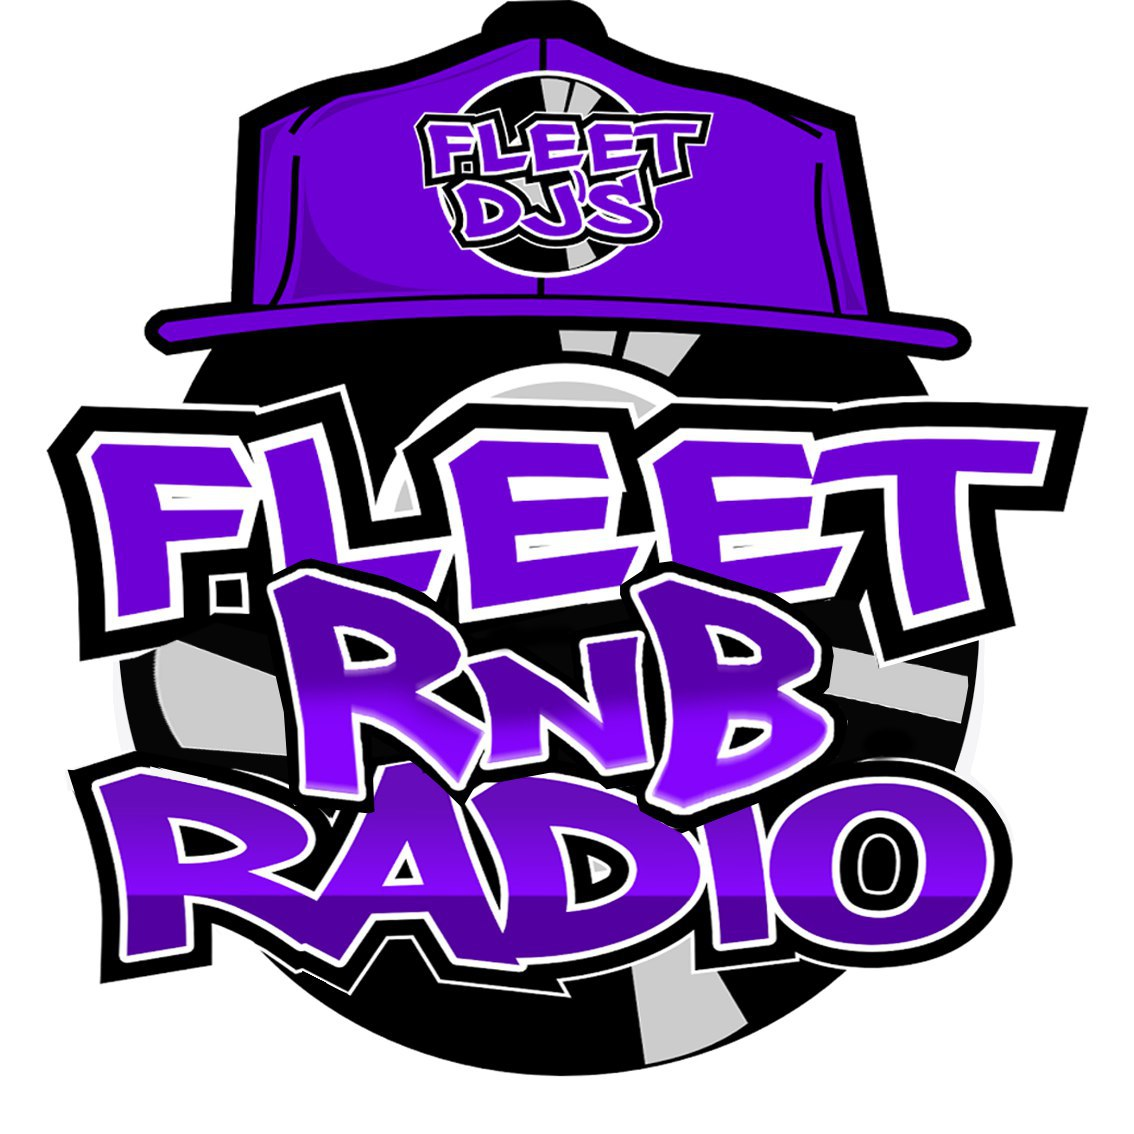 Fleet R&B Radio